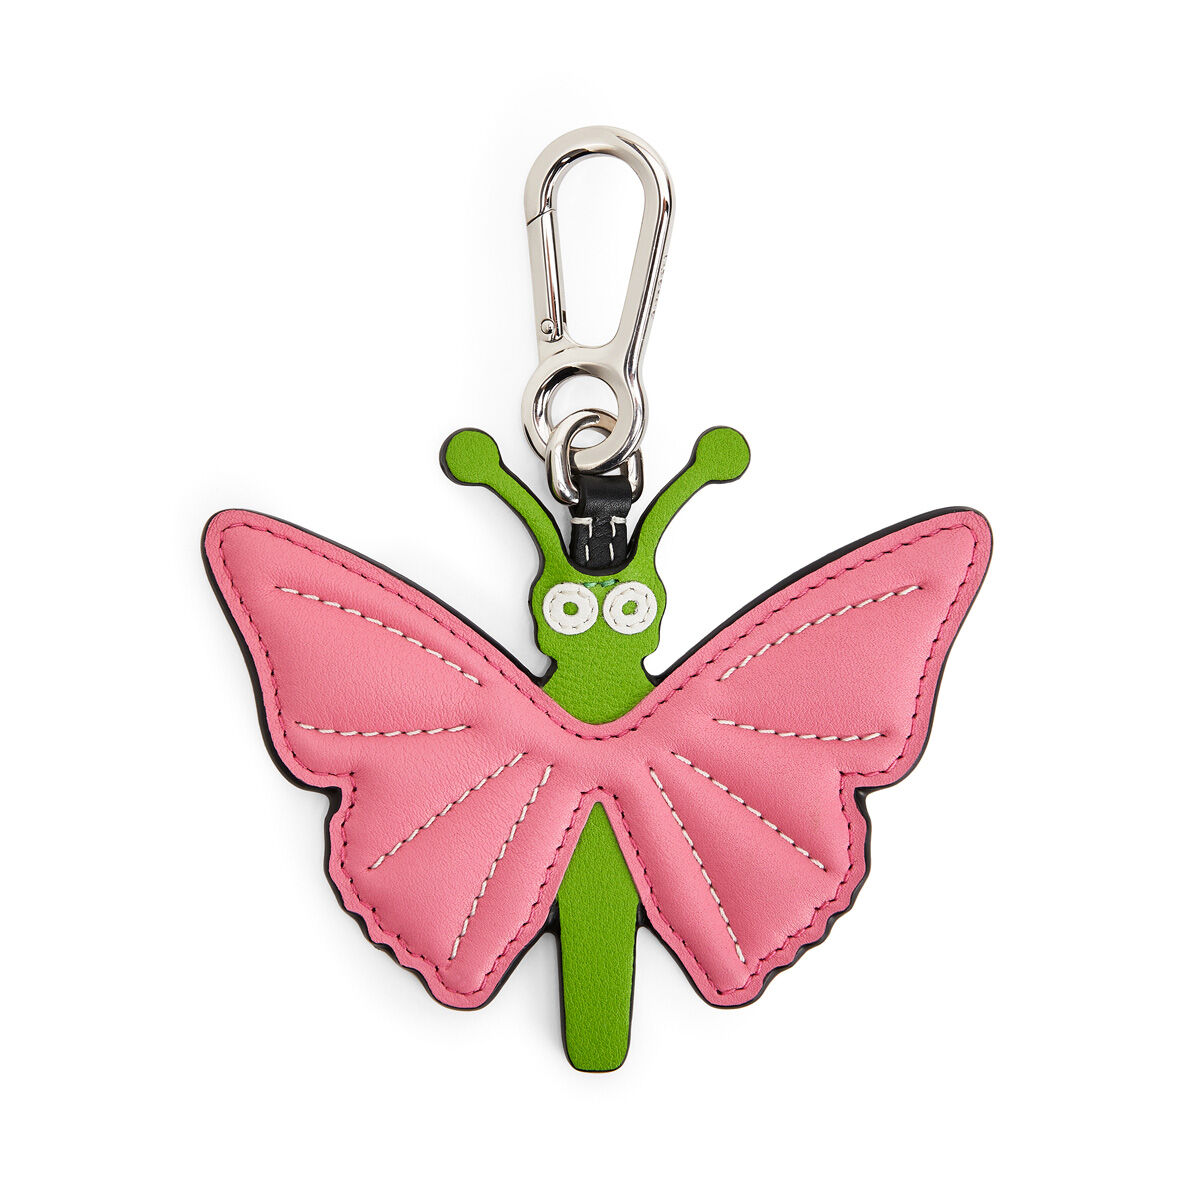 LOEWE Butterfly Charm Pink/Green all